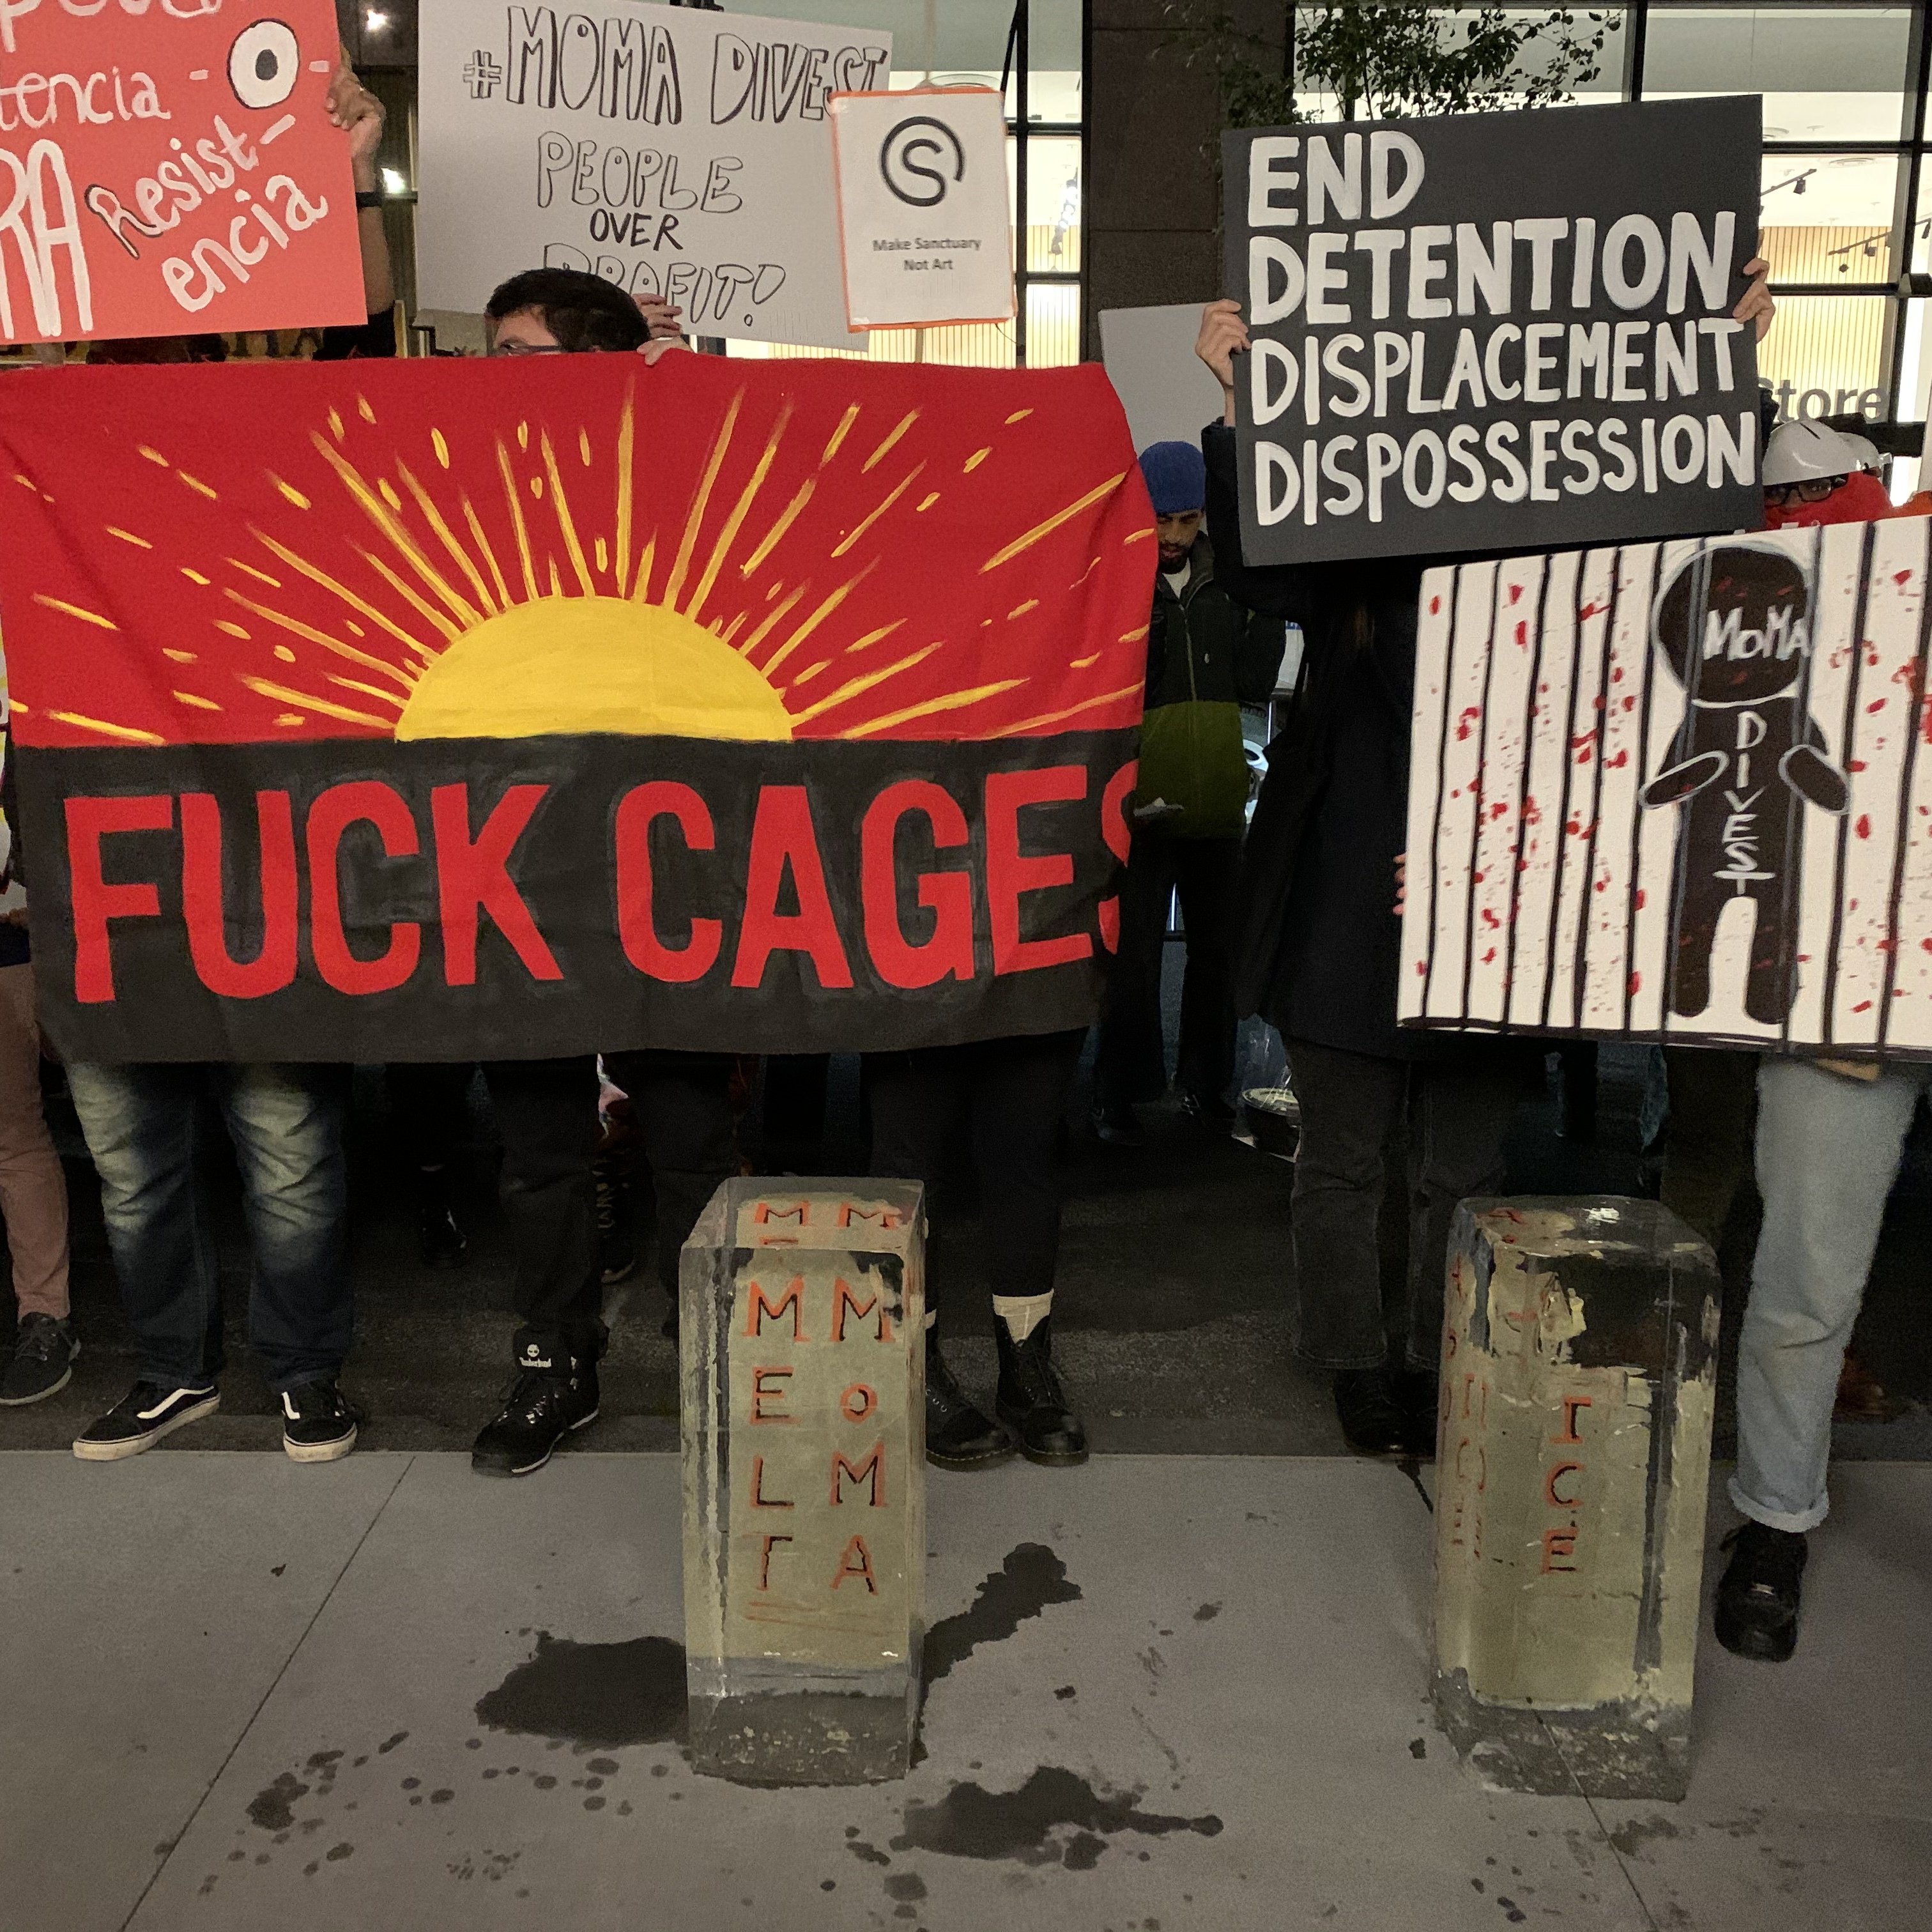 Protesters outside of MoMA on Friday, October 18. Photo: Lauren Cavalli.